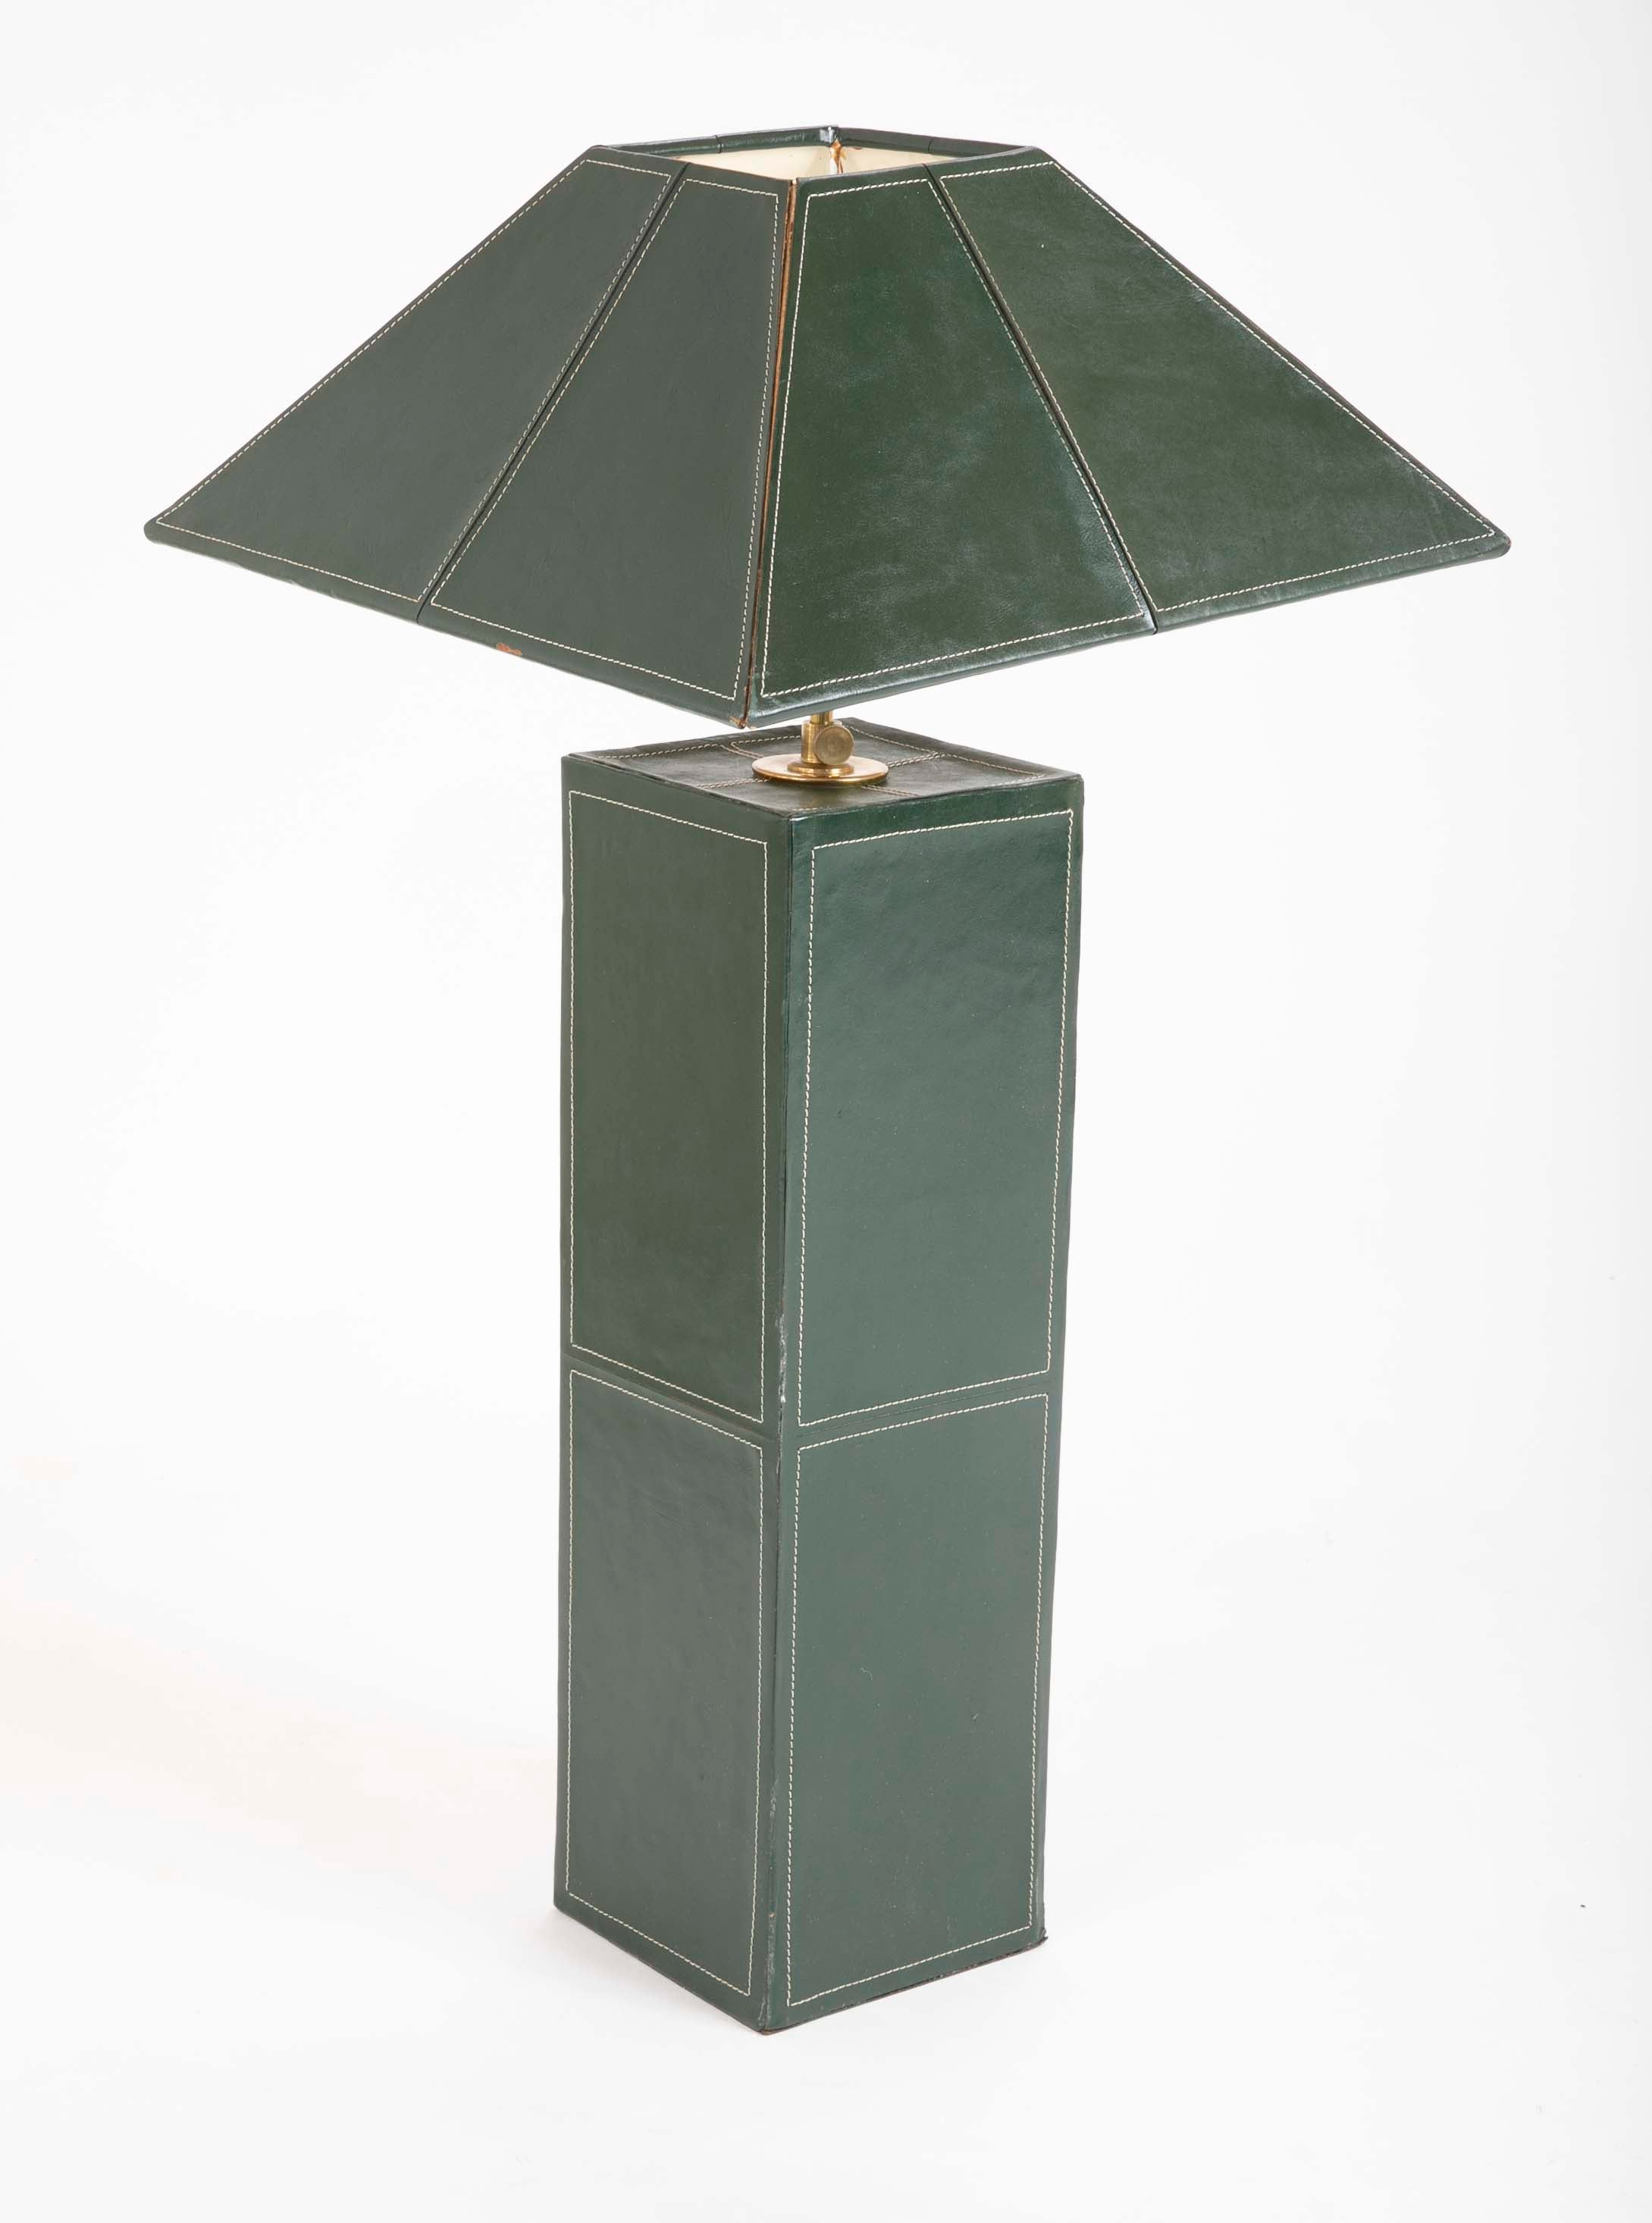 Pair of Leather Covered Lamps in the Manner of Jacques Adnet